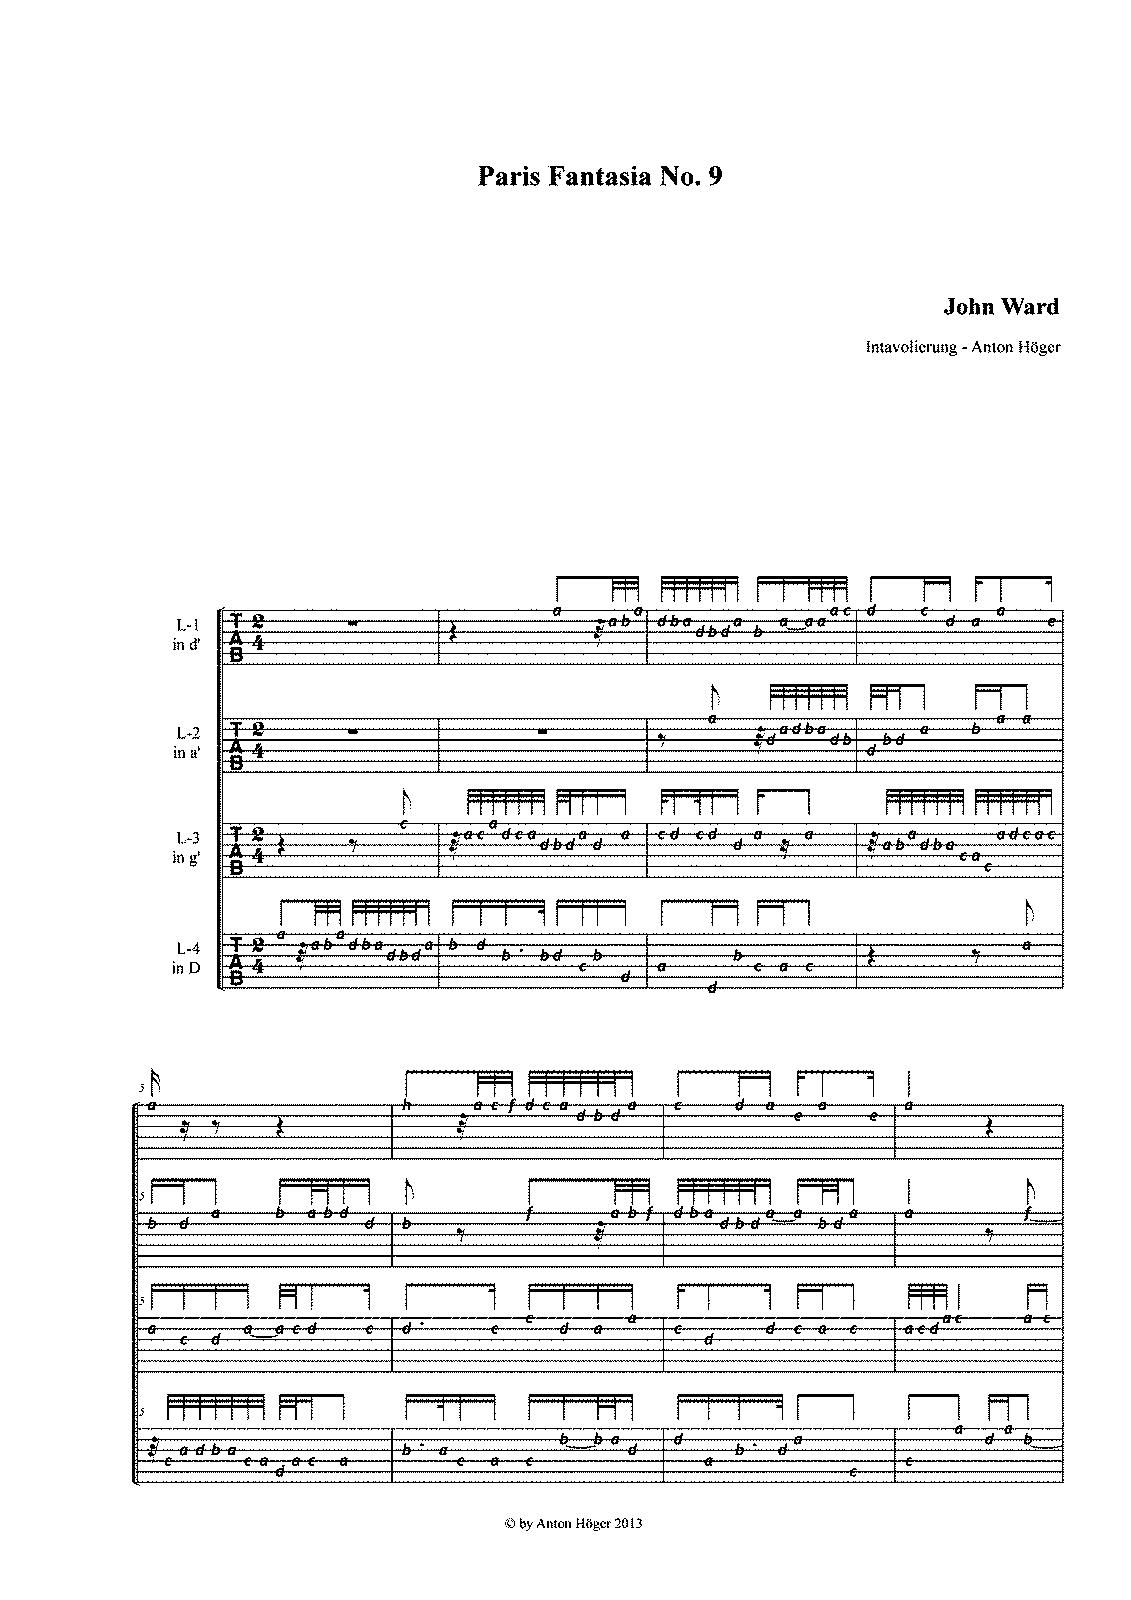 PMLP257086-Ward, John - Paris Fantasia No.9 (Fin.Tab).pdf